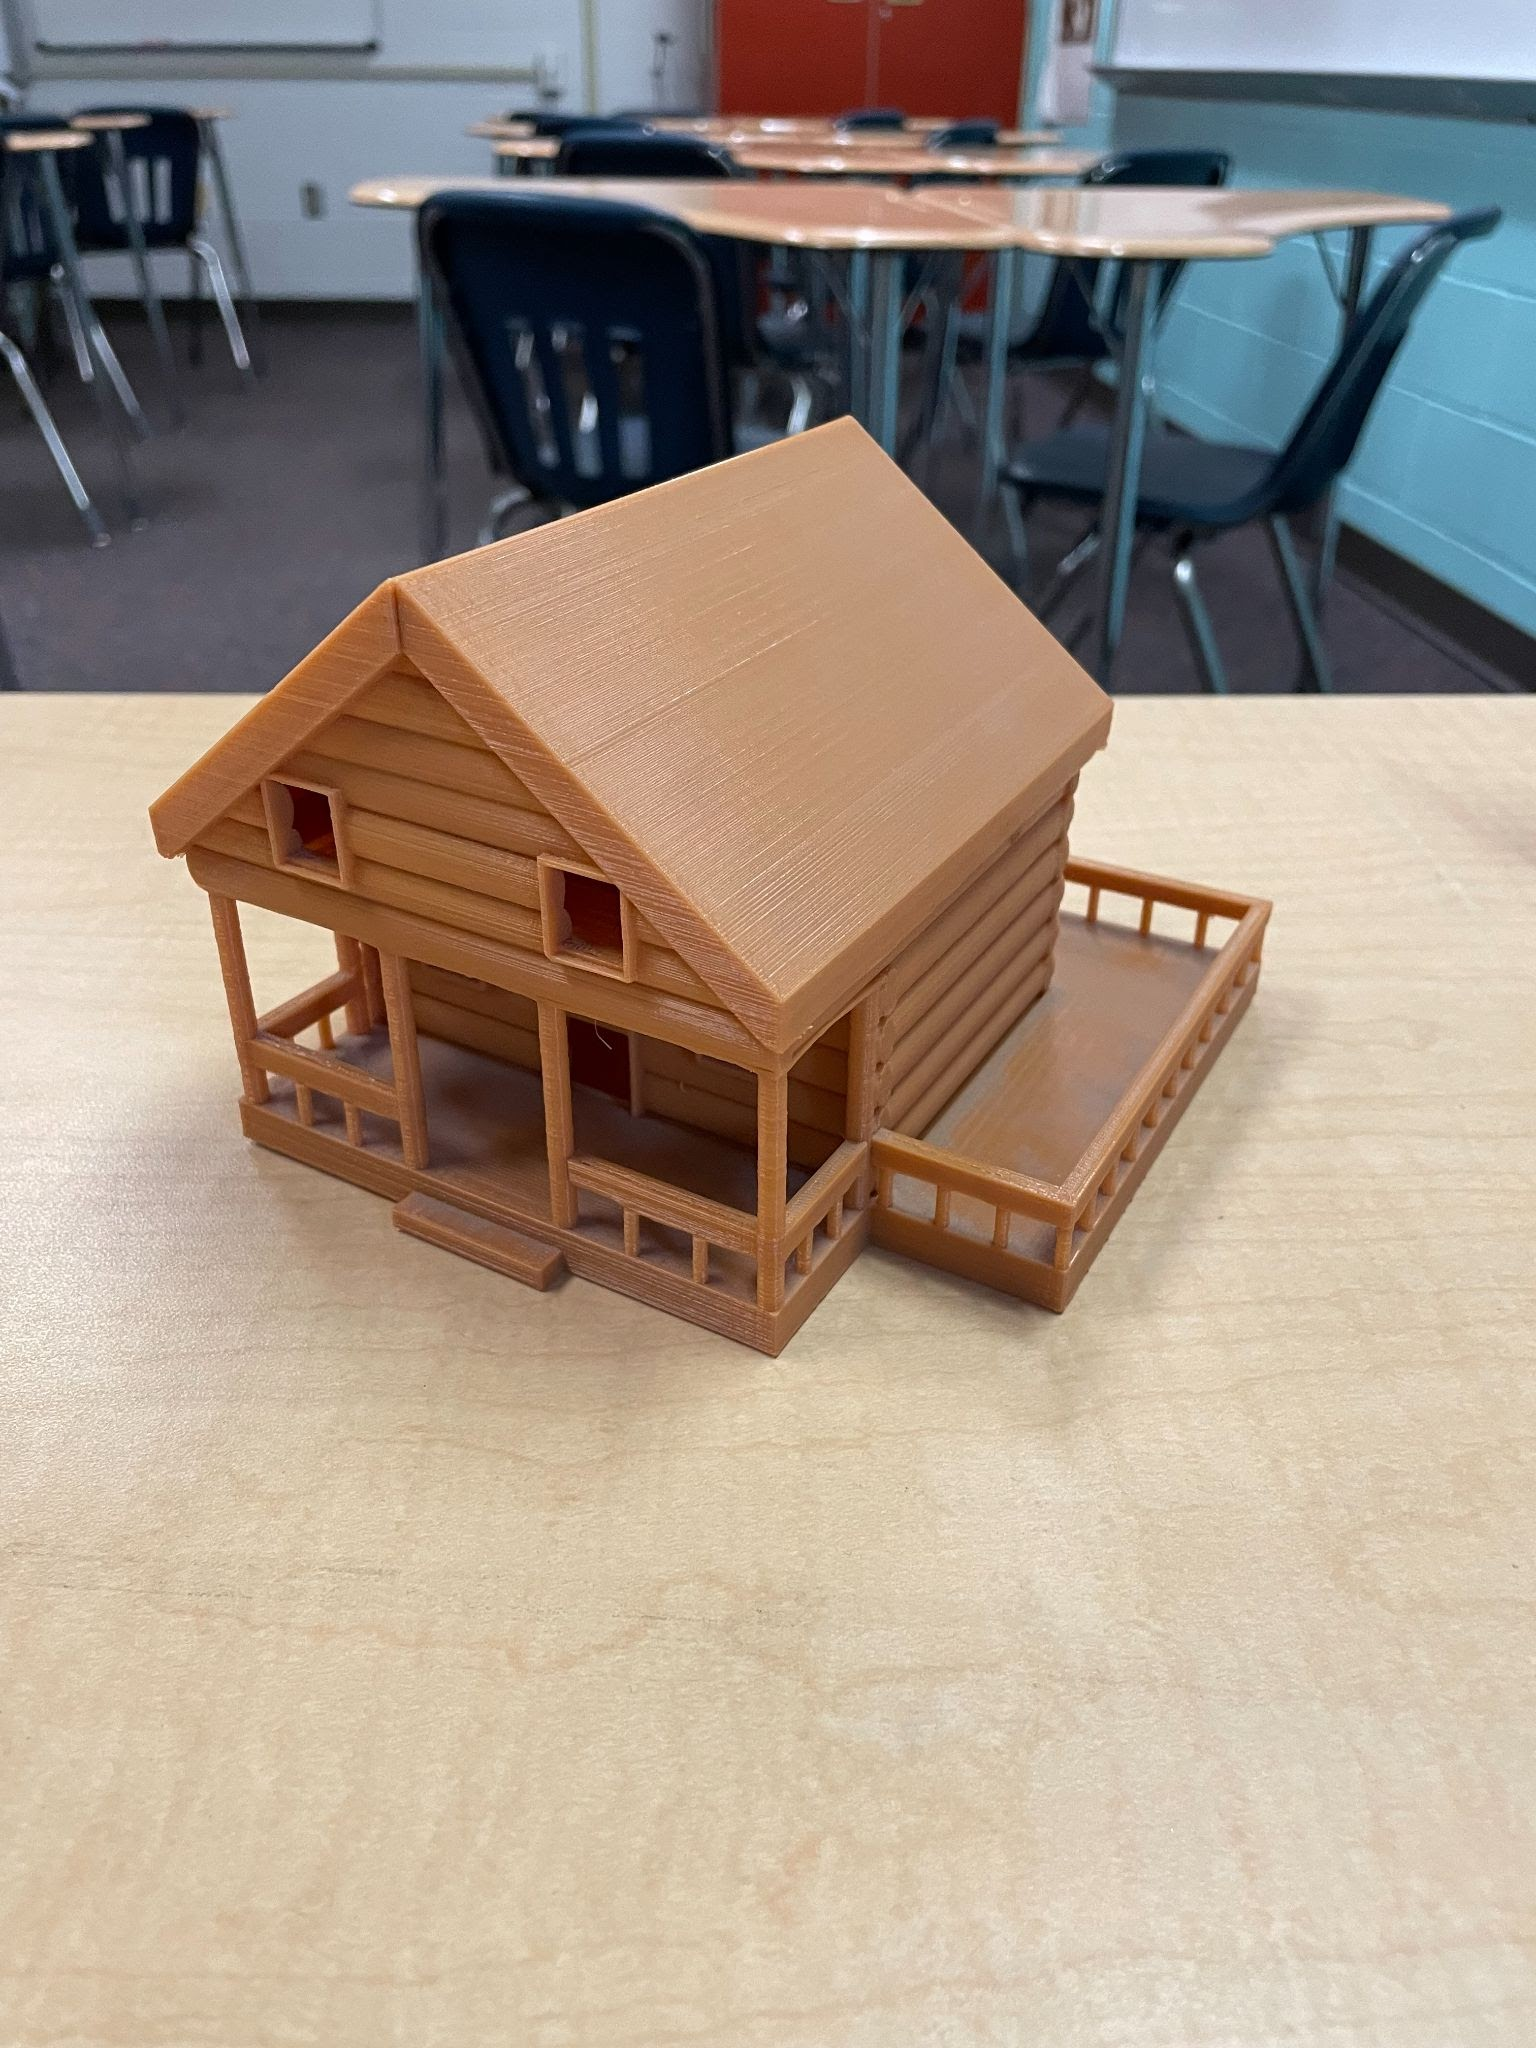 scaled model of a 3D printed log home